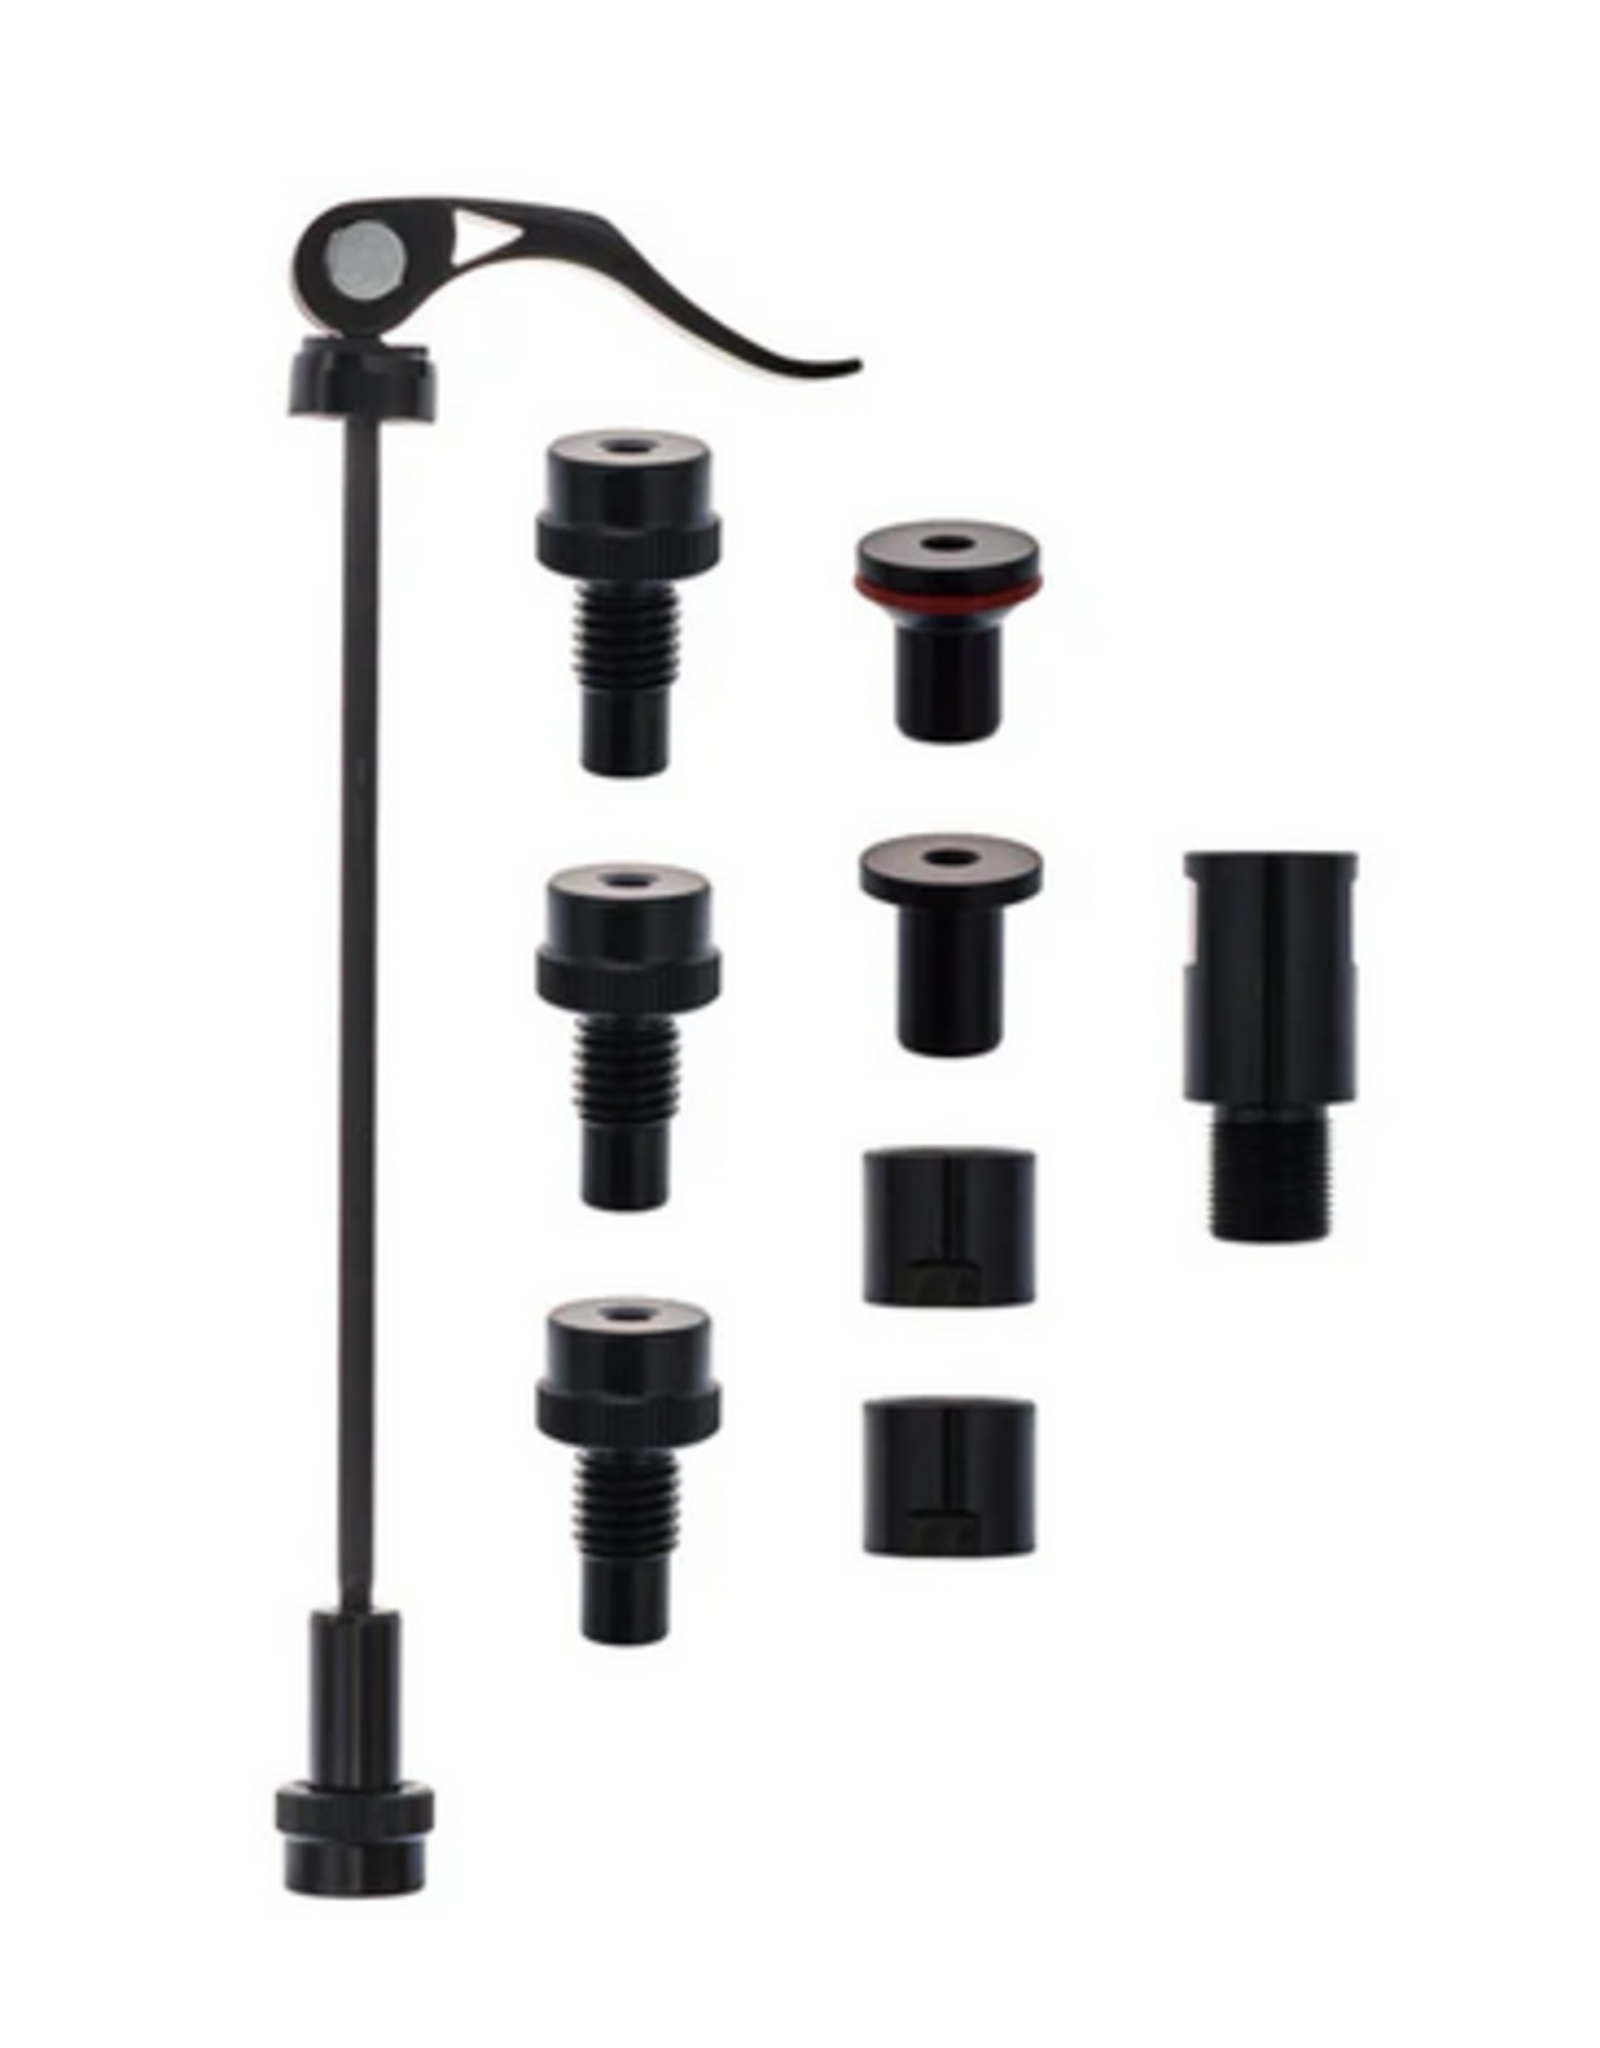 Garmin Direct-drive Axle with Adapter Set